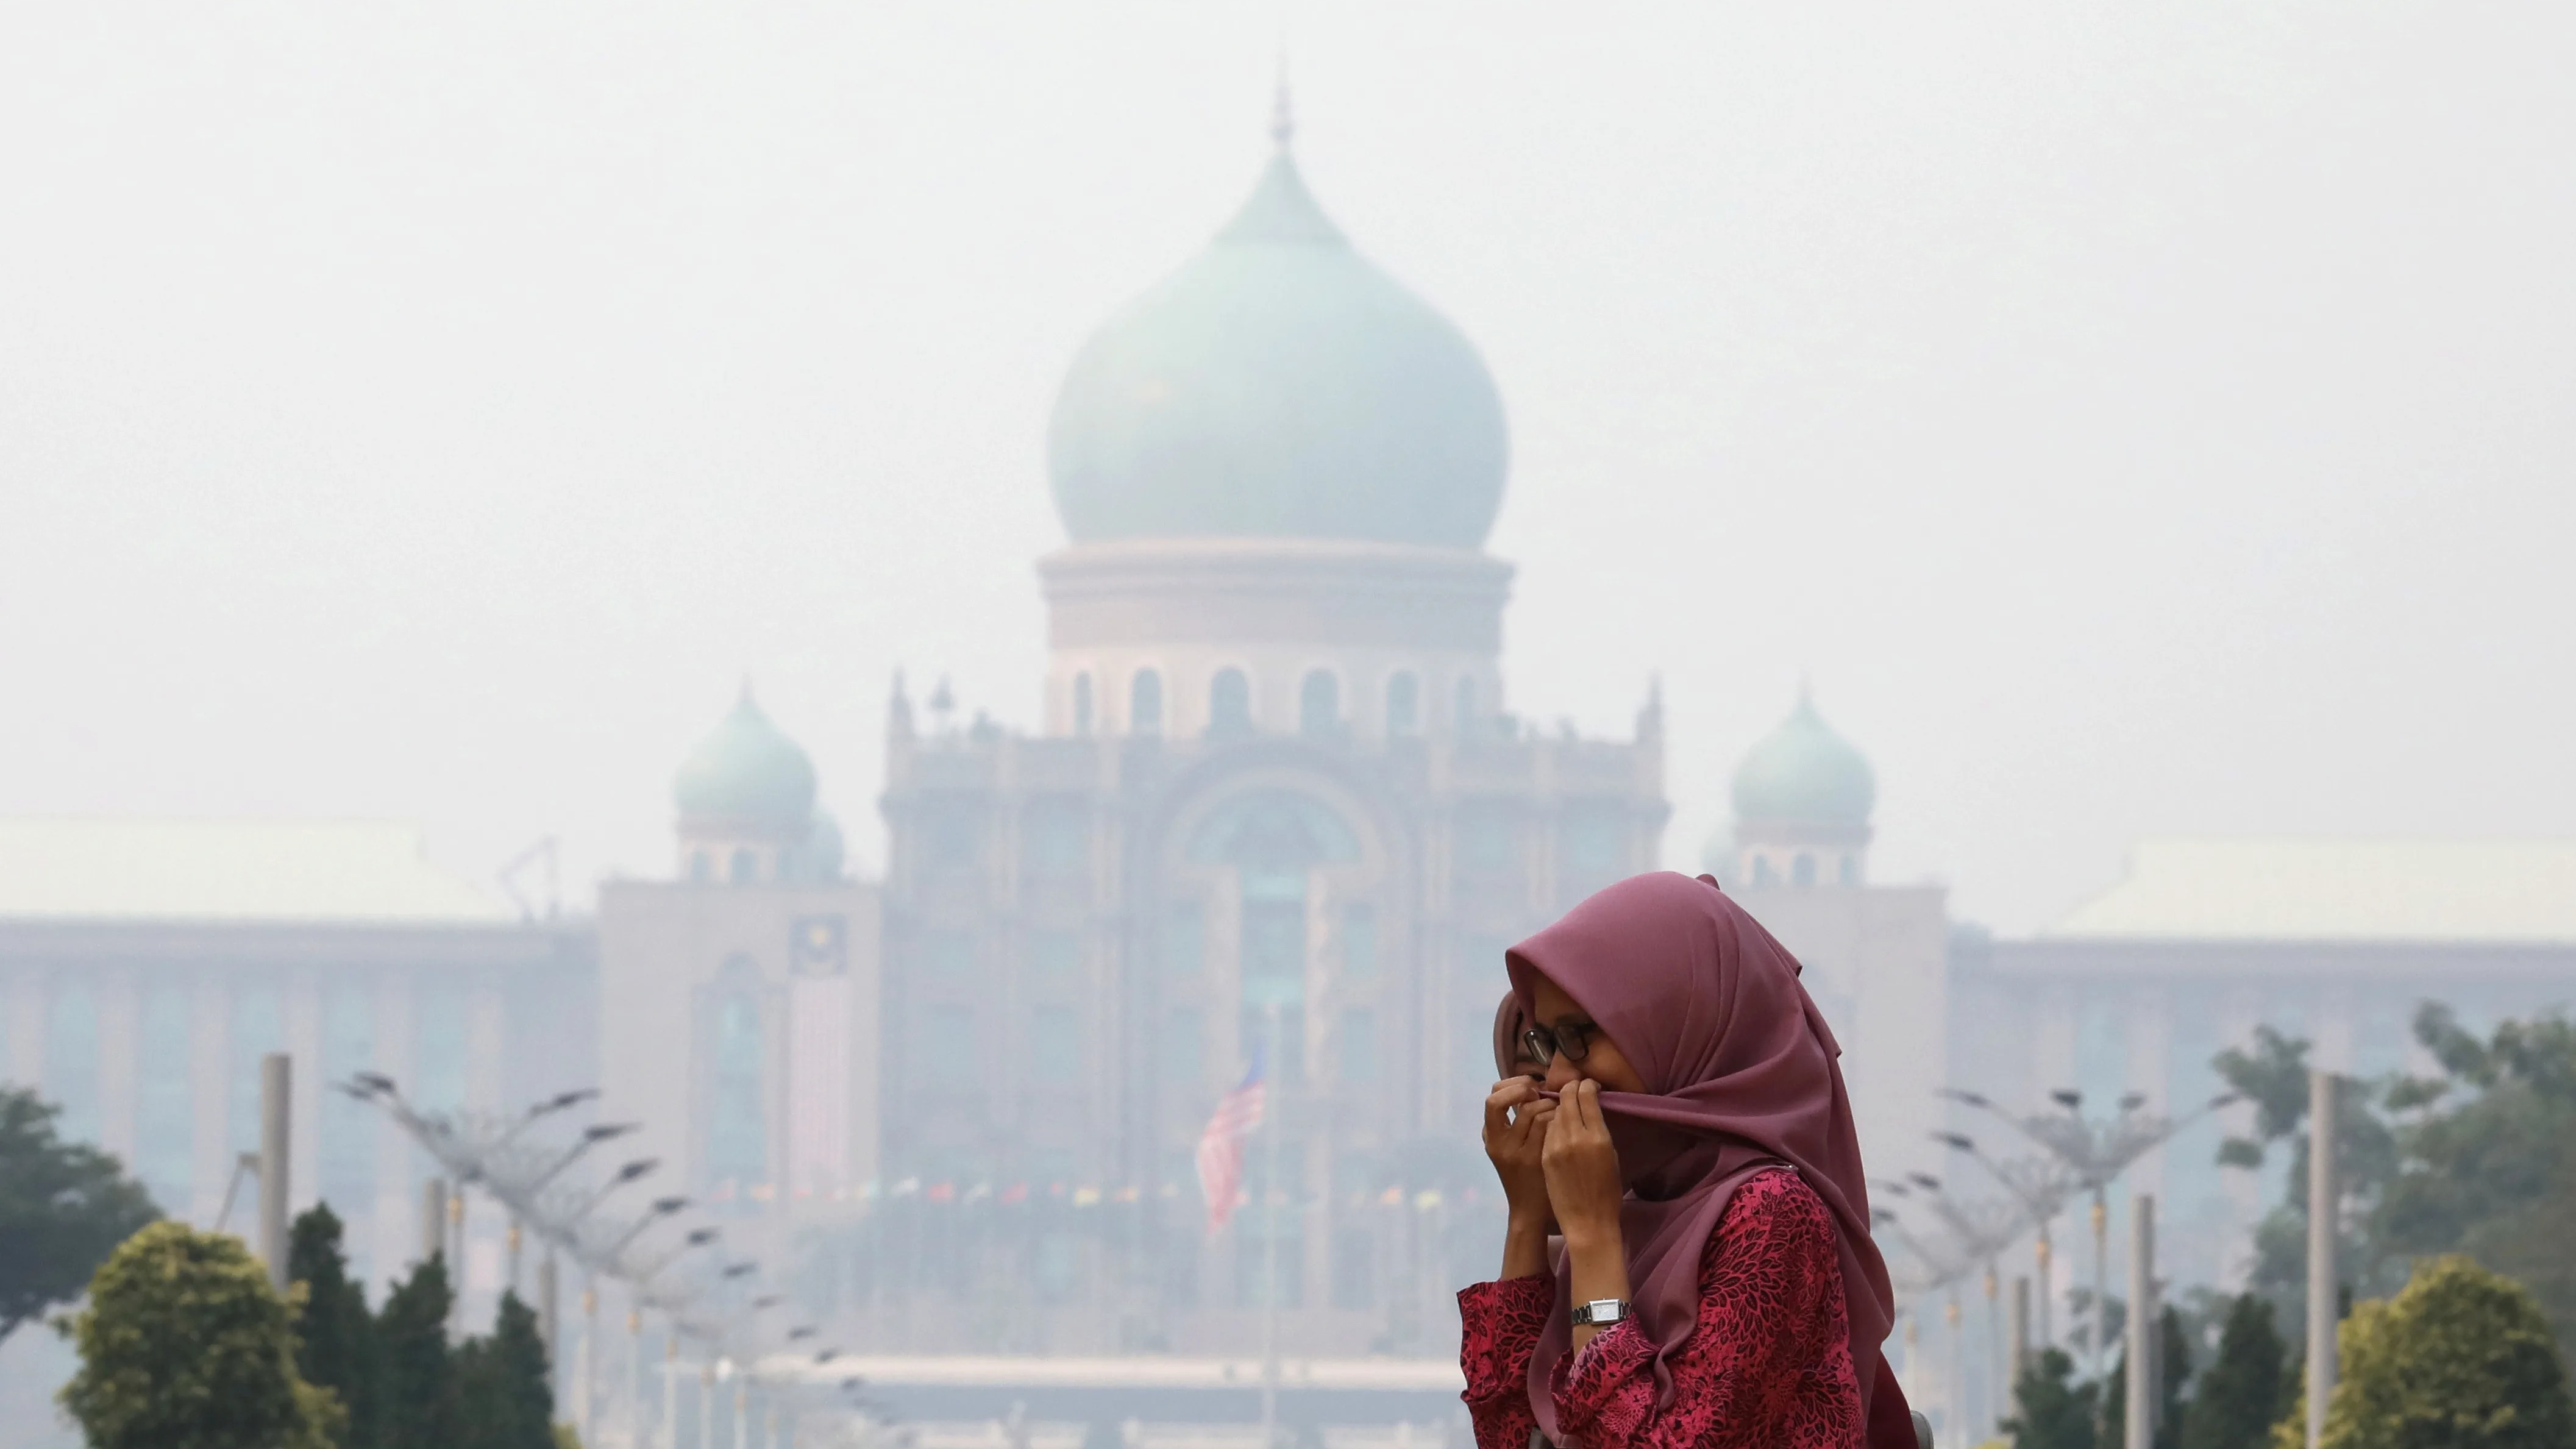 Haze Plagued Malaysia To Press Companies Over Indonesia Fires Nikkei Asian Review